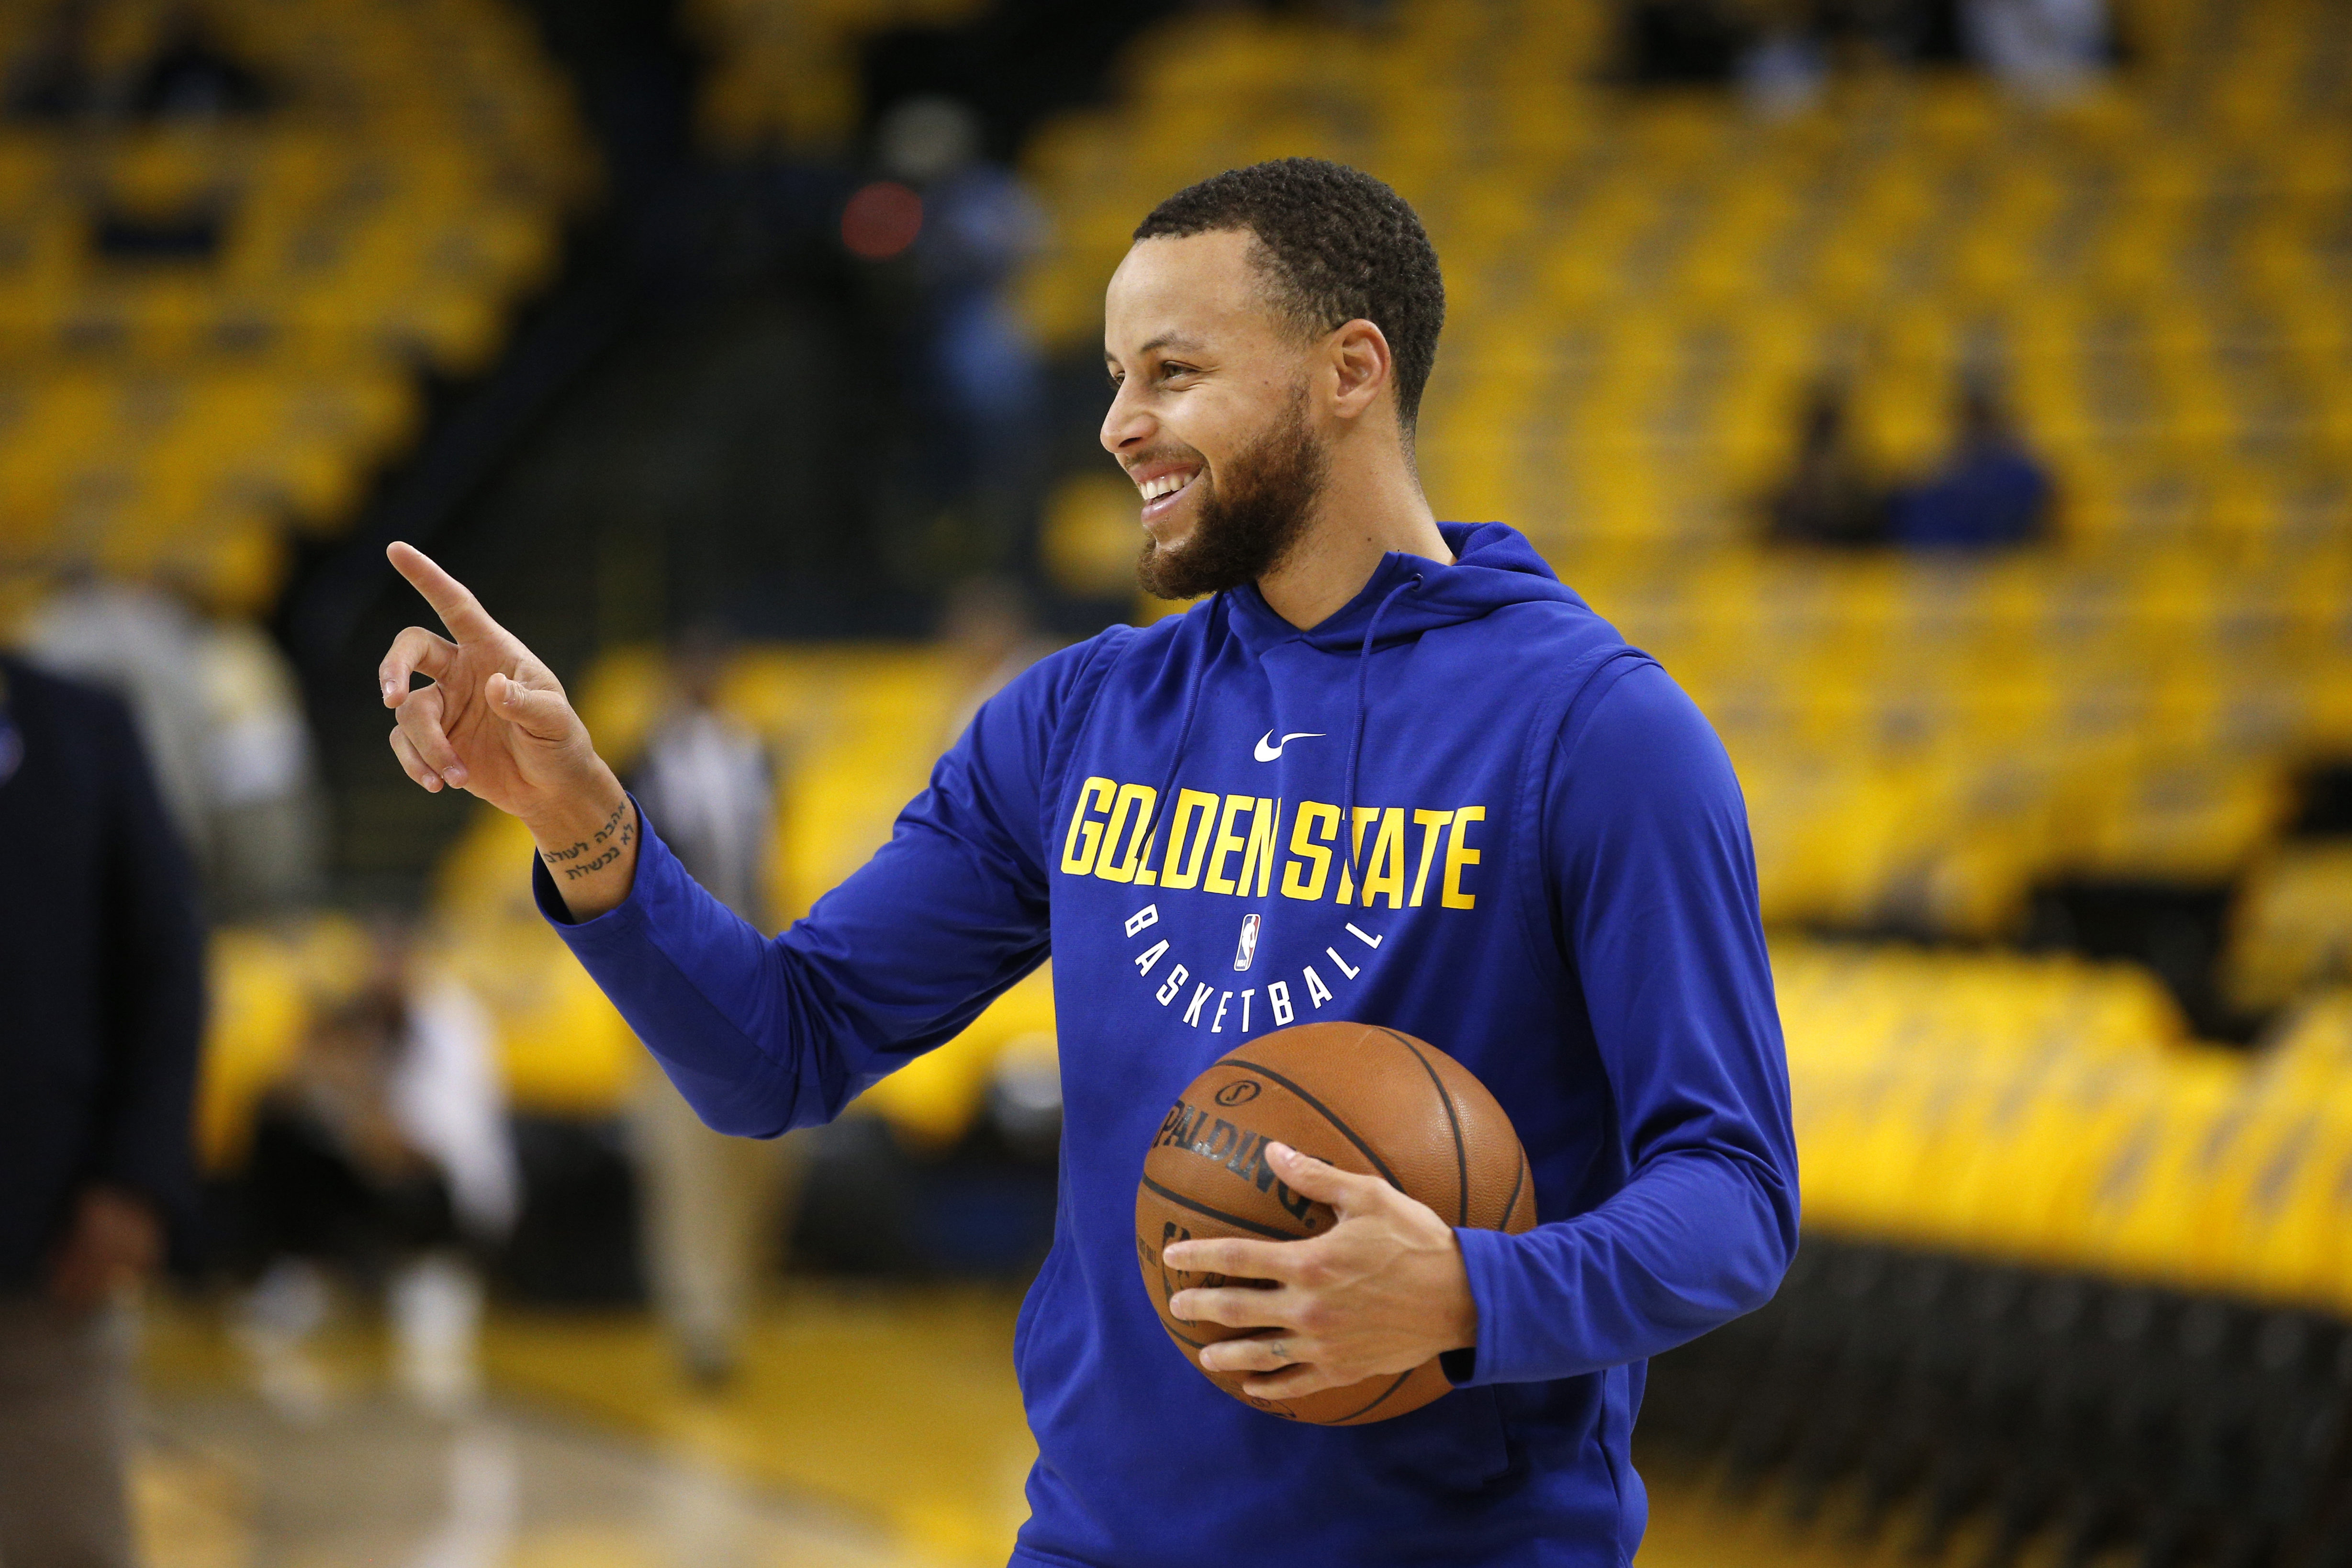 stephen curry knee will play tonight vs new orleans pelicans